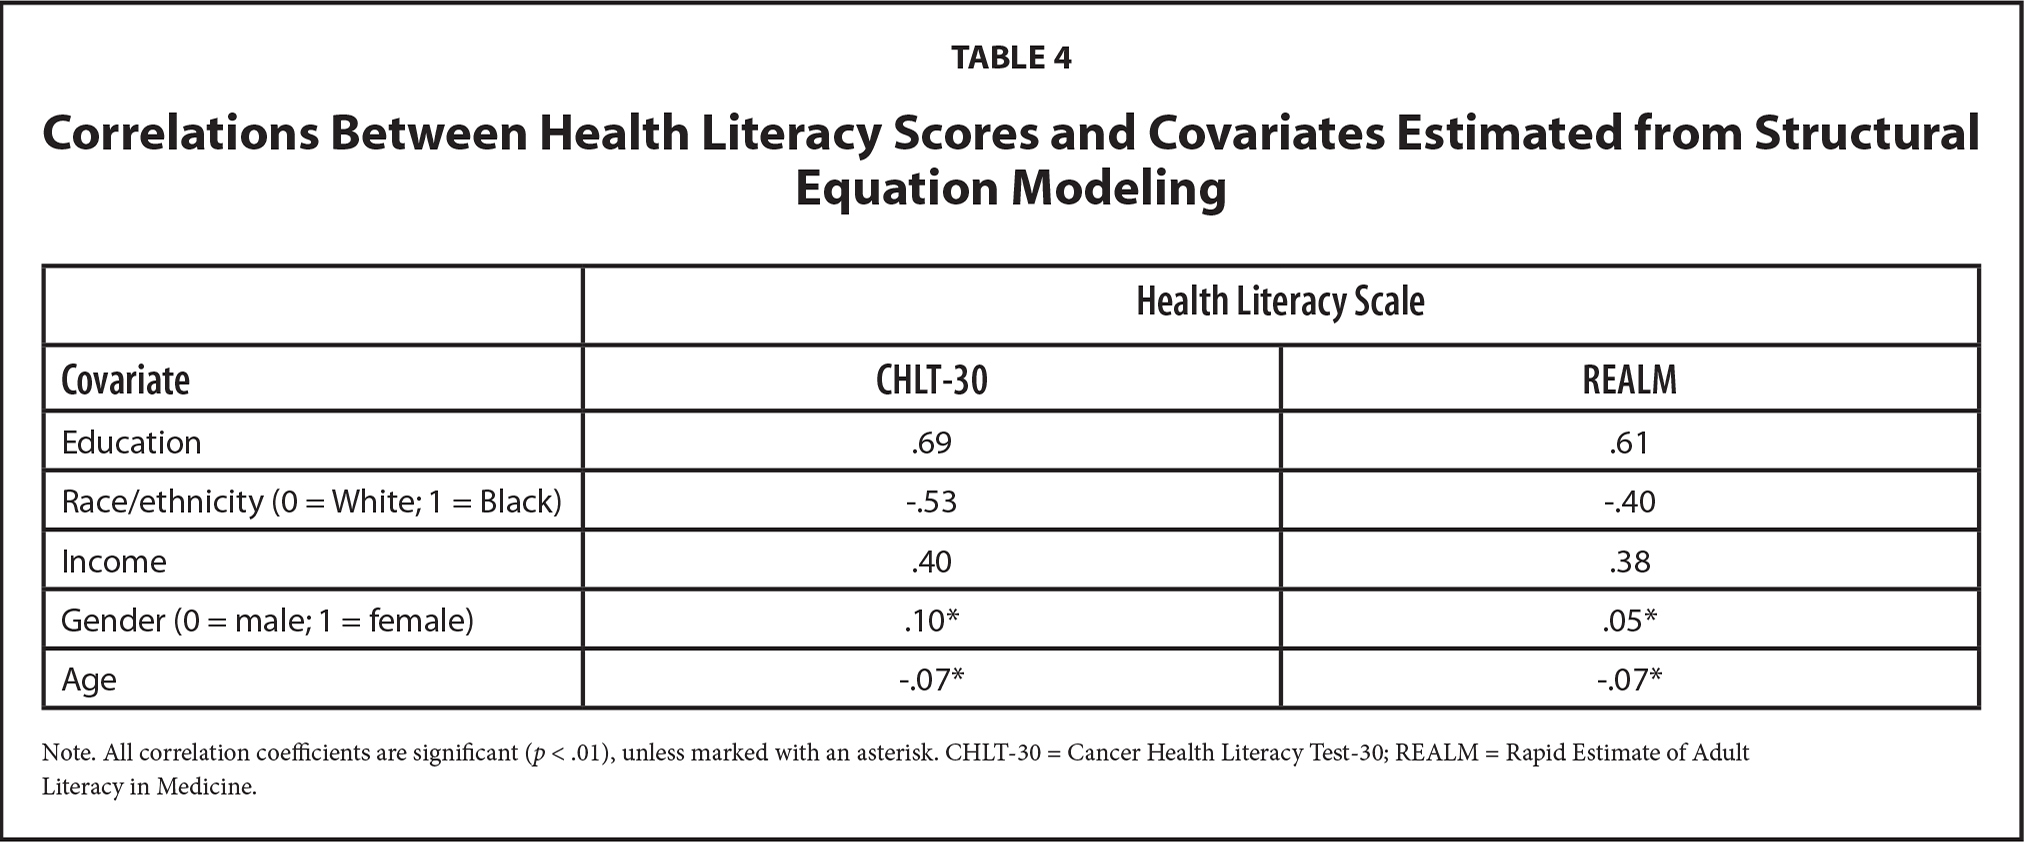 Correlations Between Health Literacy Scores and Covariates Estimated from Structural Equation Modeling